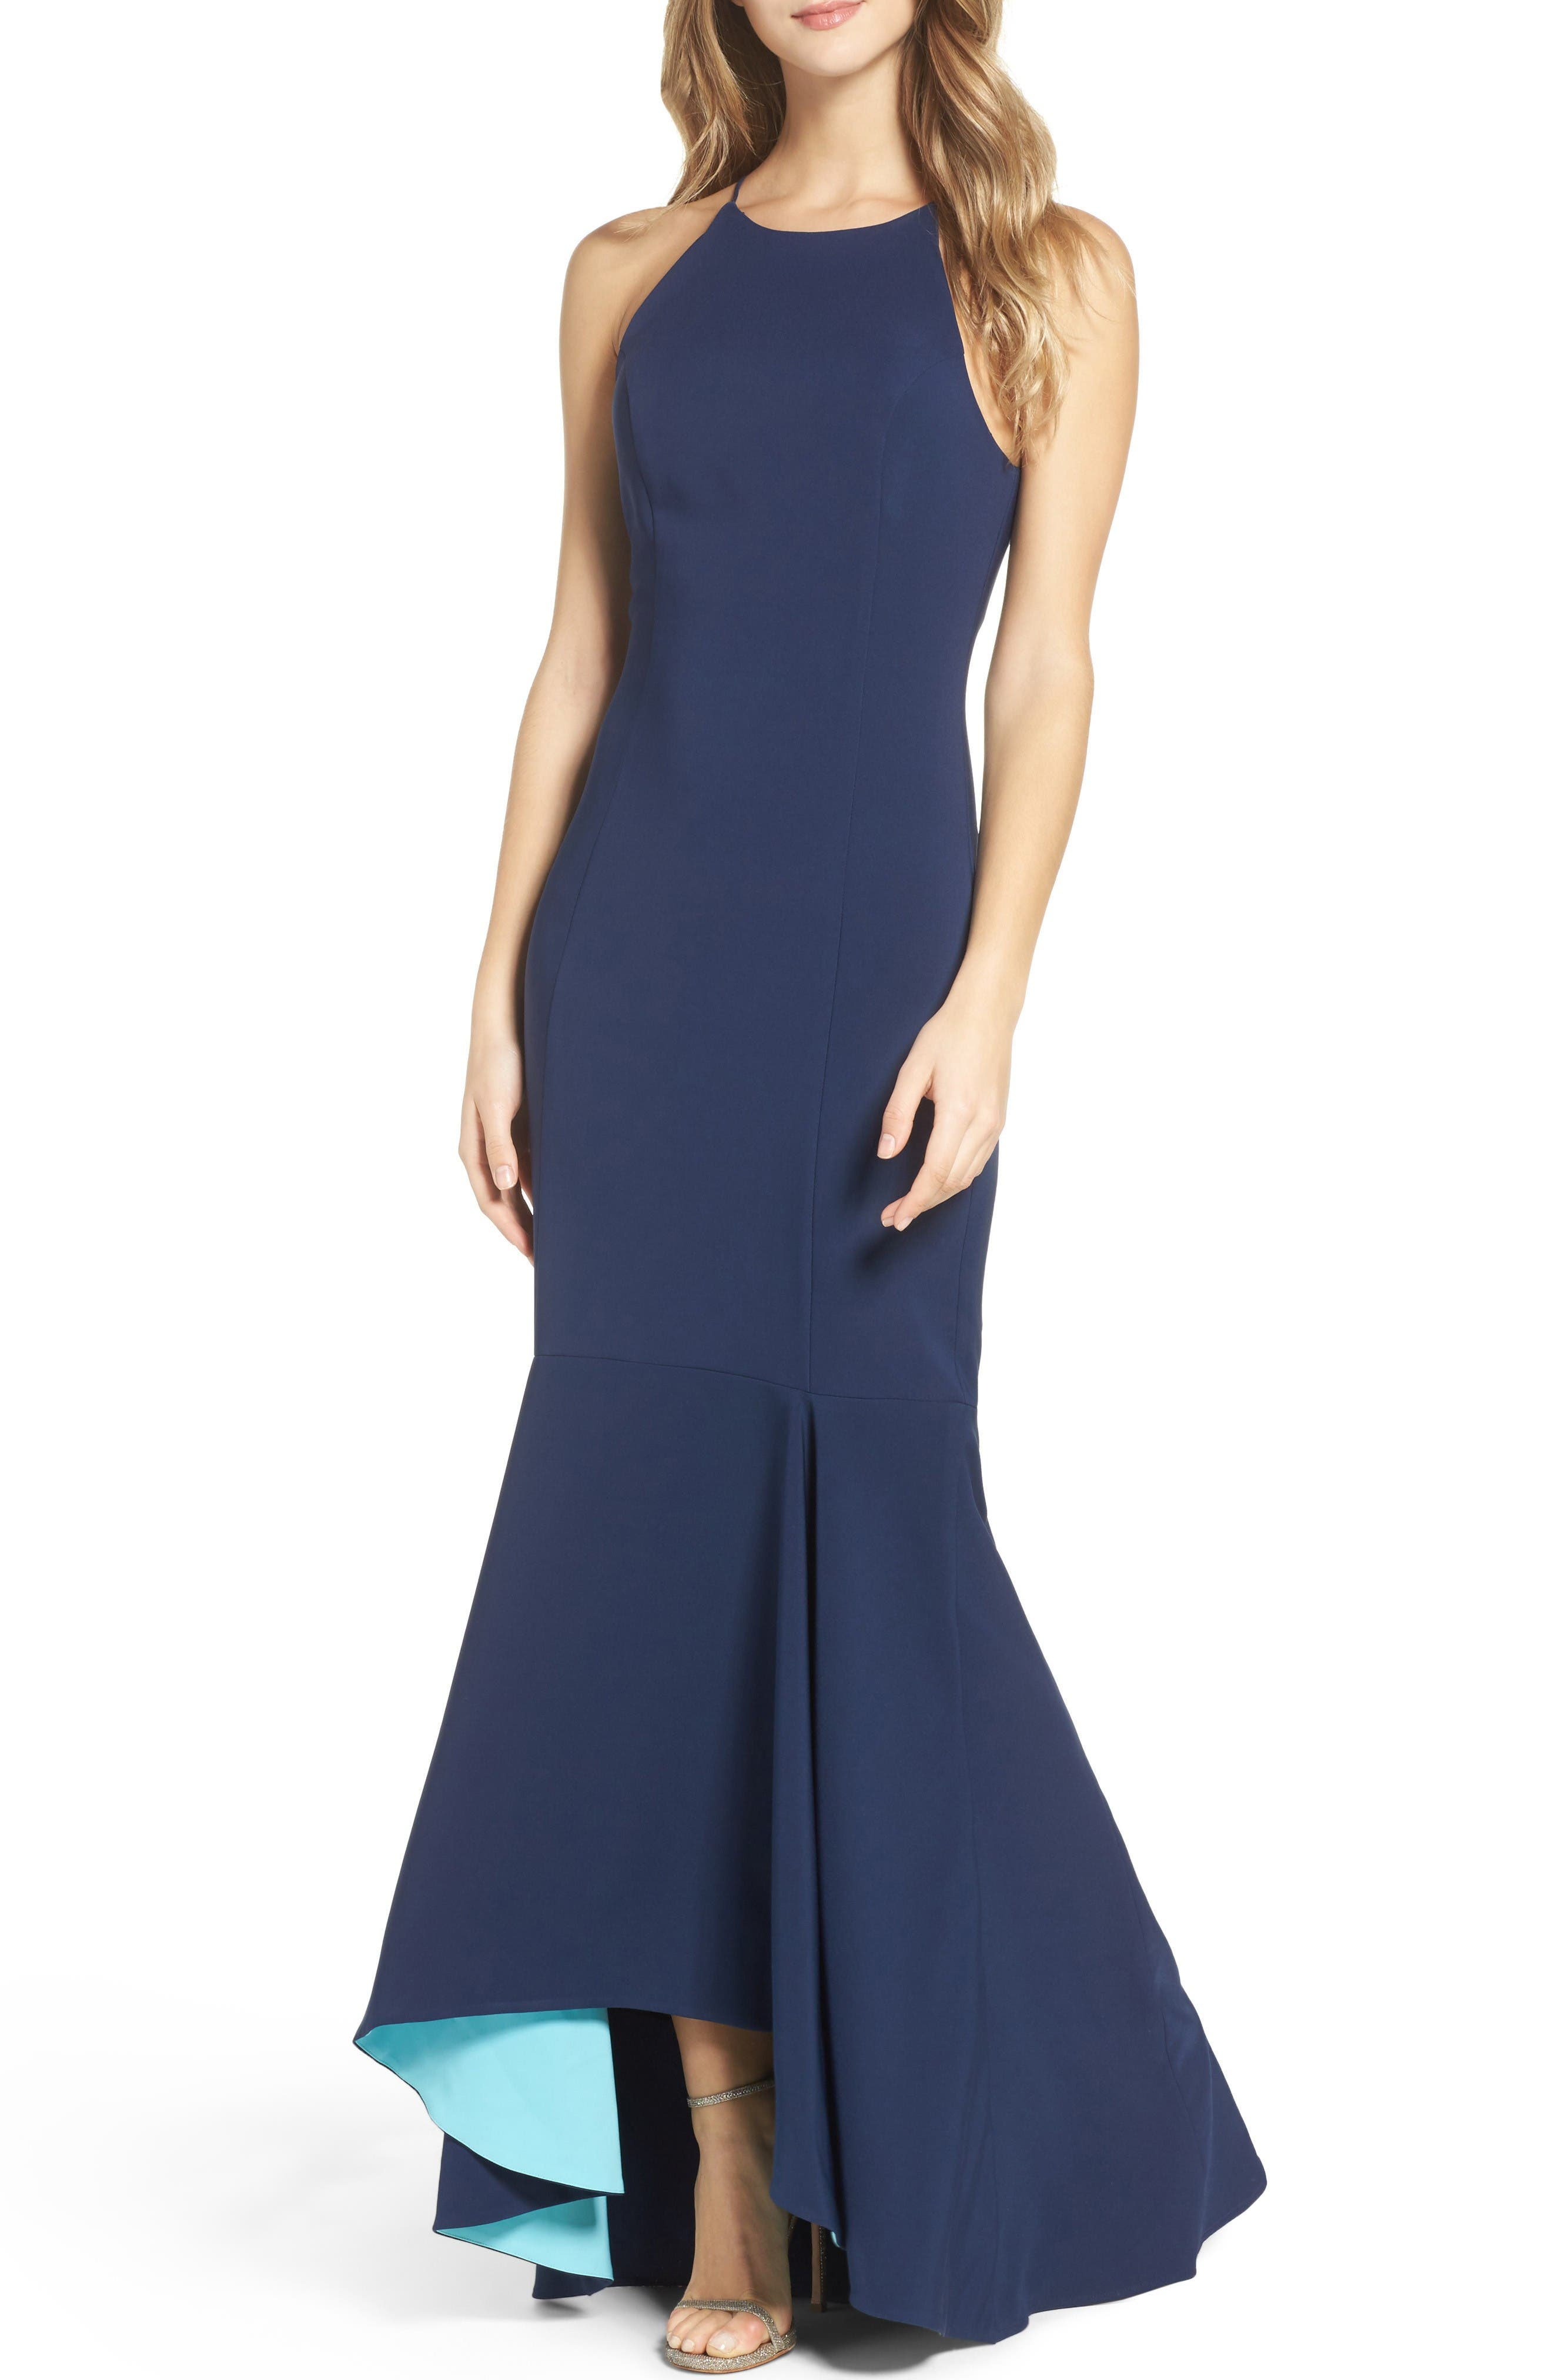 Maria Bianca Nero Colorblock Mermaid Gown